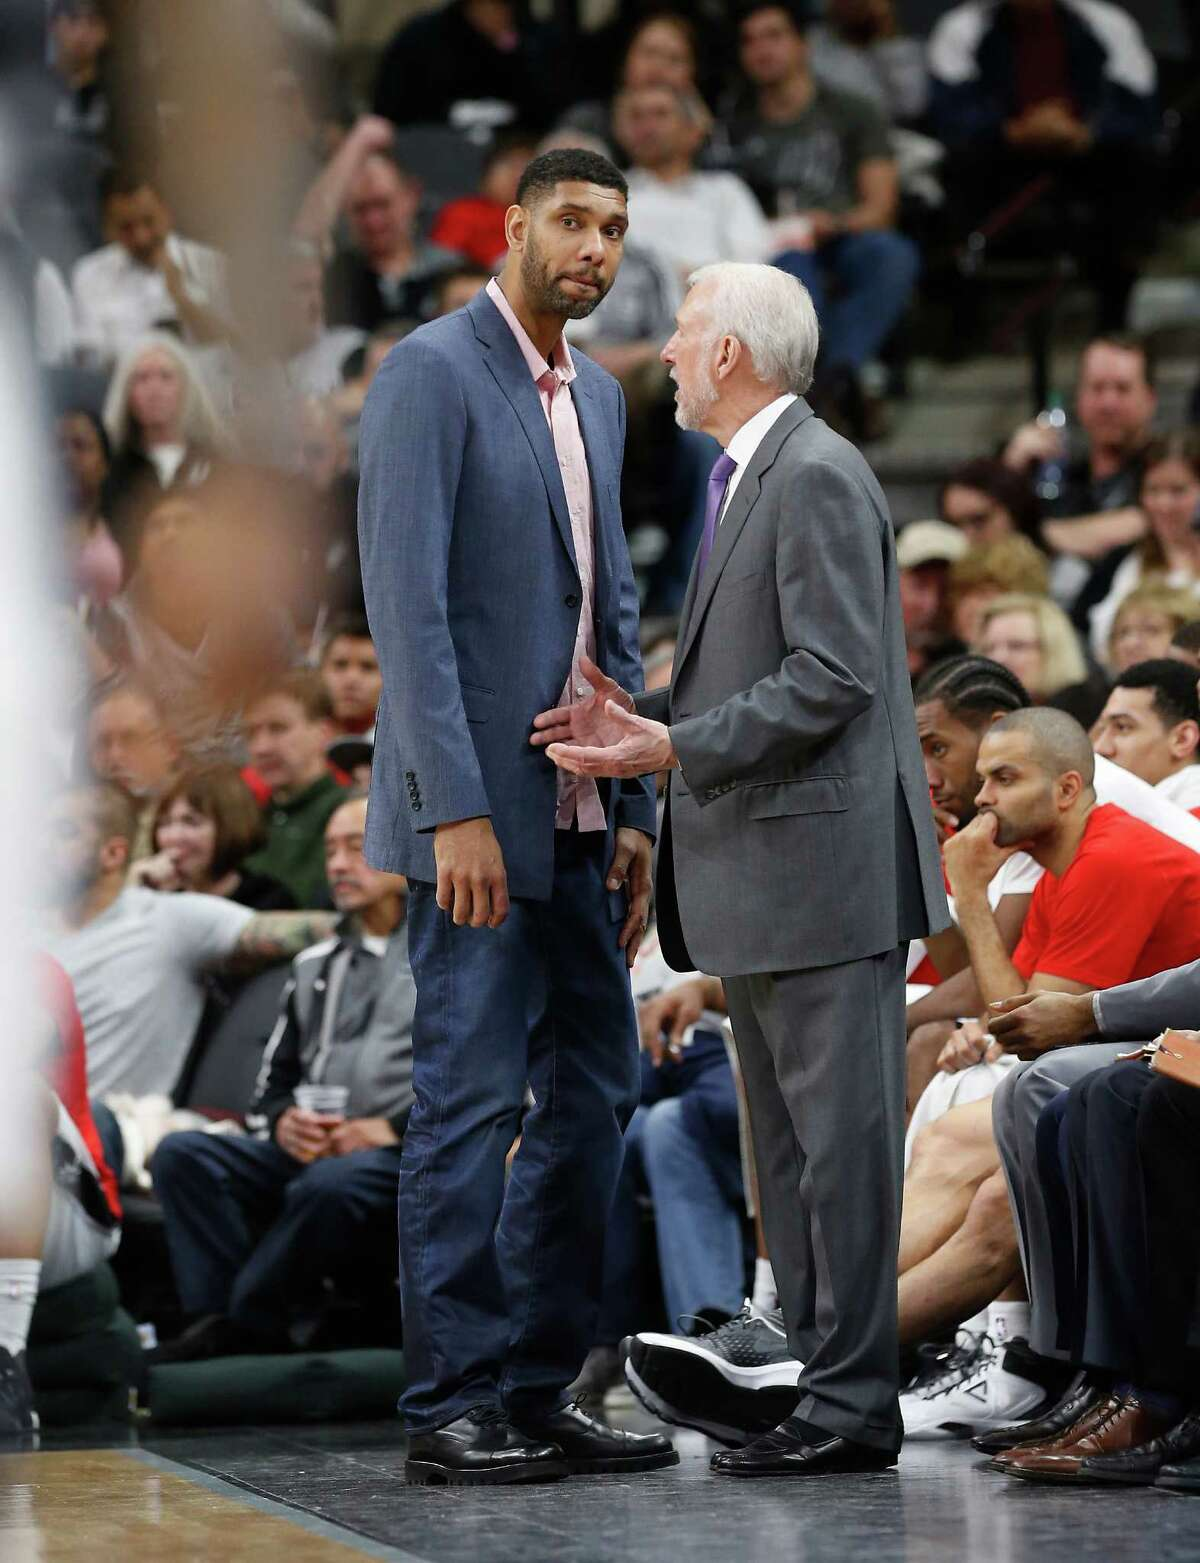 Spurs' Tim Duncan (left) and Spurs head coach Gregg Popovich chat during the game against the Houston Rockets at the AT&T Center on Wednesday, Jan. 27, 2016. Spurs defeated the Rockets, 130-99. Duncan rested due to a sore knee. (Kin Man Hui/San Antonio Express-News)